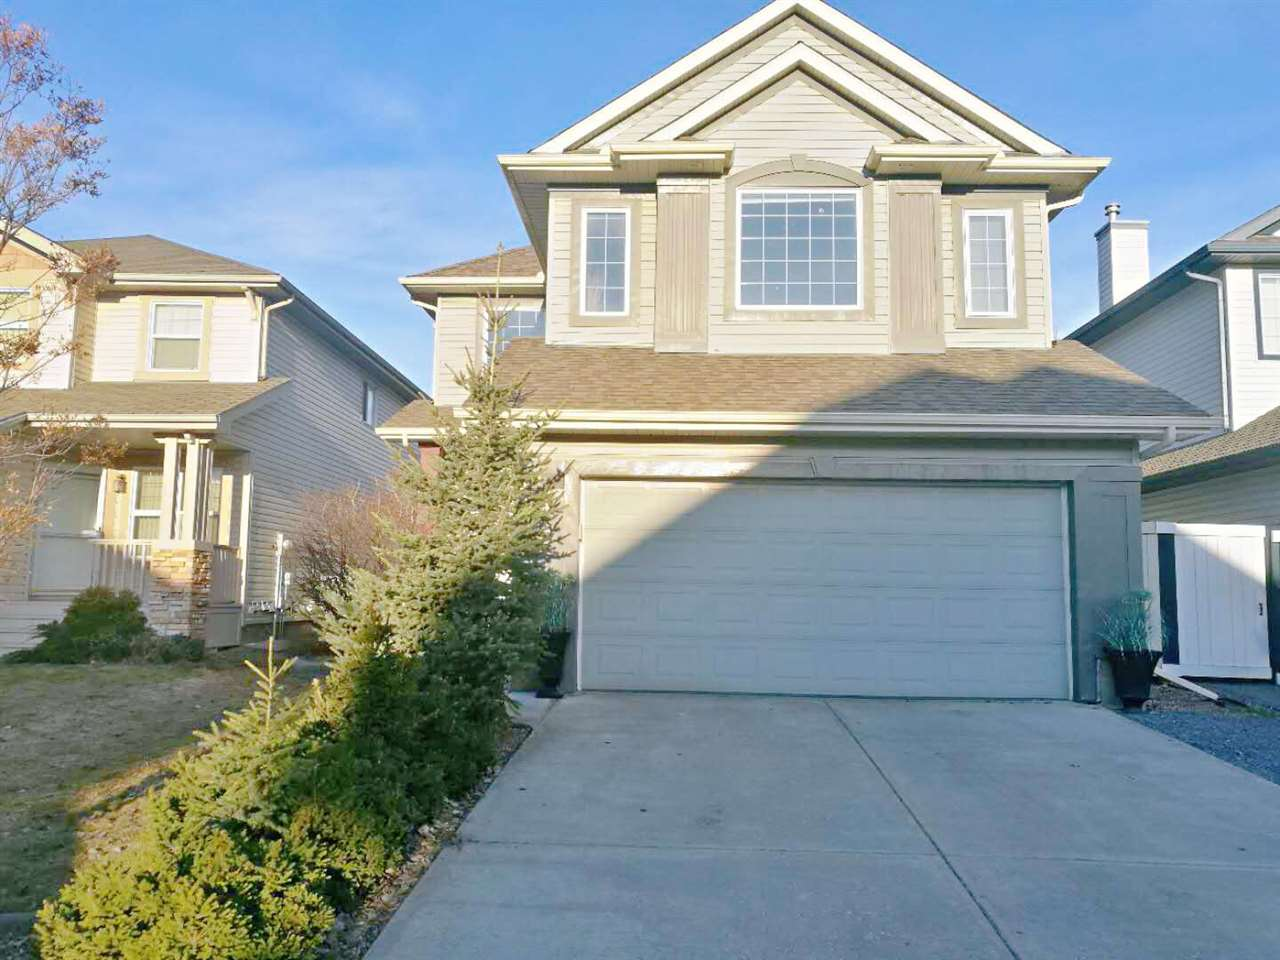 1112 117 Street, 3 bed, 3 bath, at $464,900